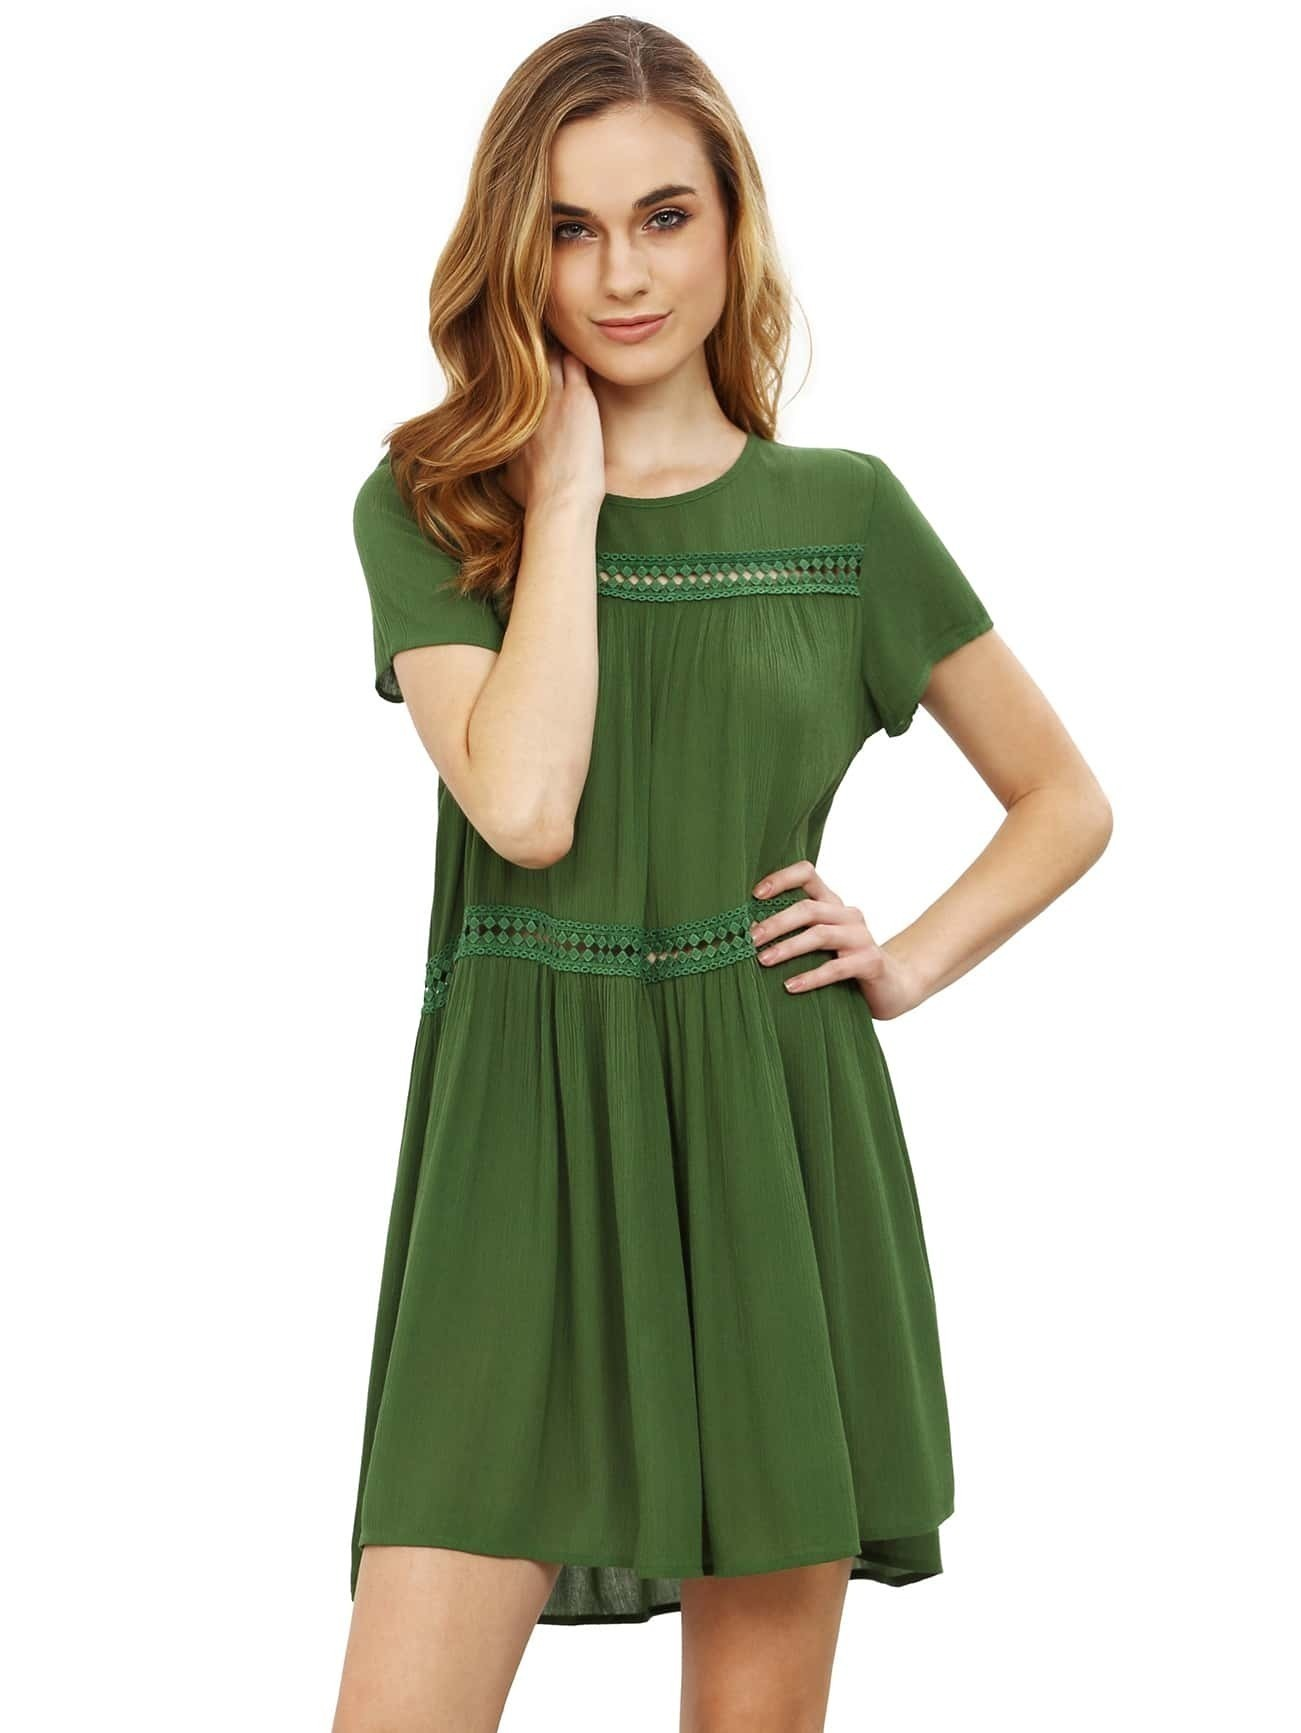 cfeb4119e0a1ef Army Green Short Sleeve Shift Dress EmmaCloth-Women Fast Fashion Online